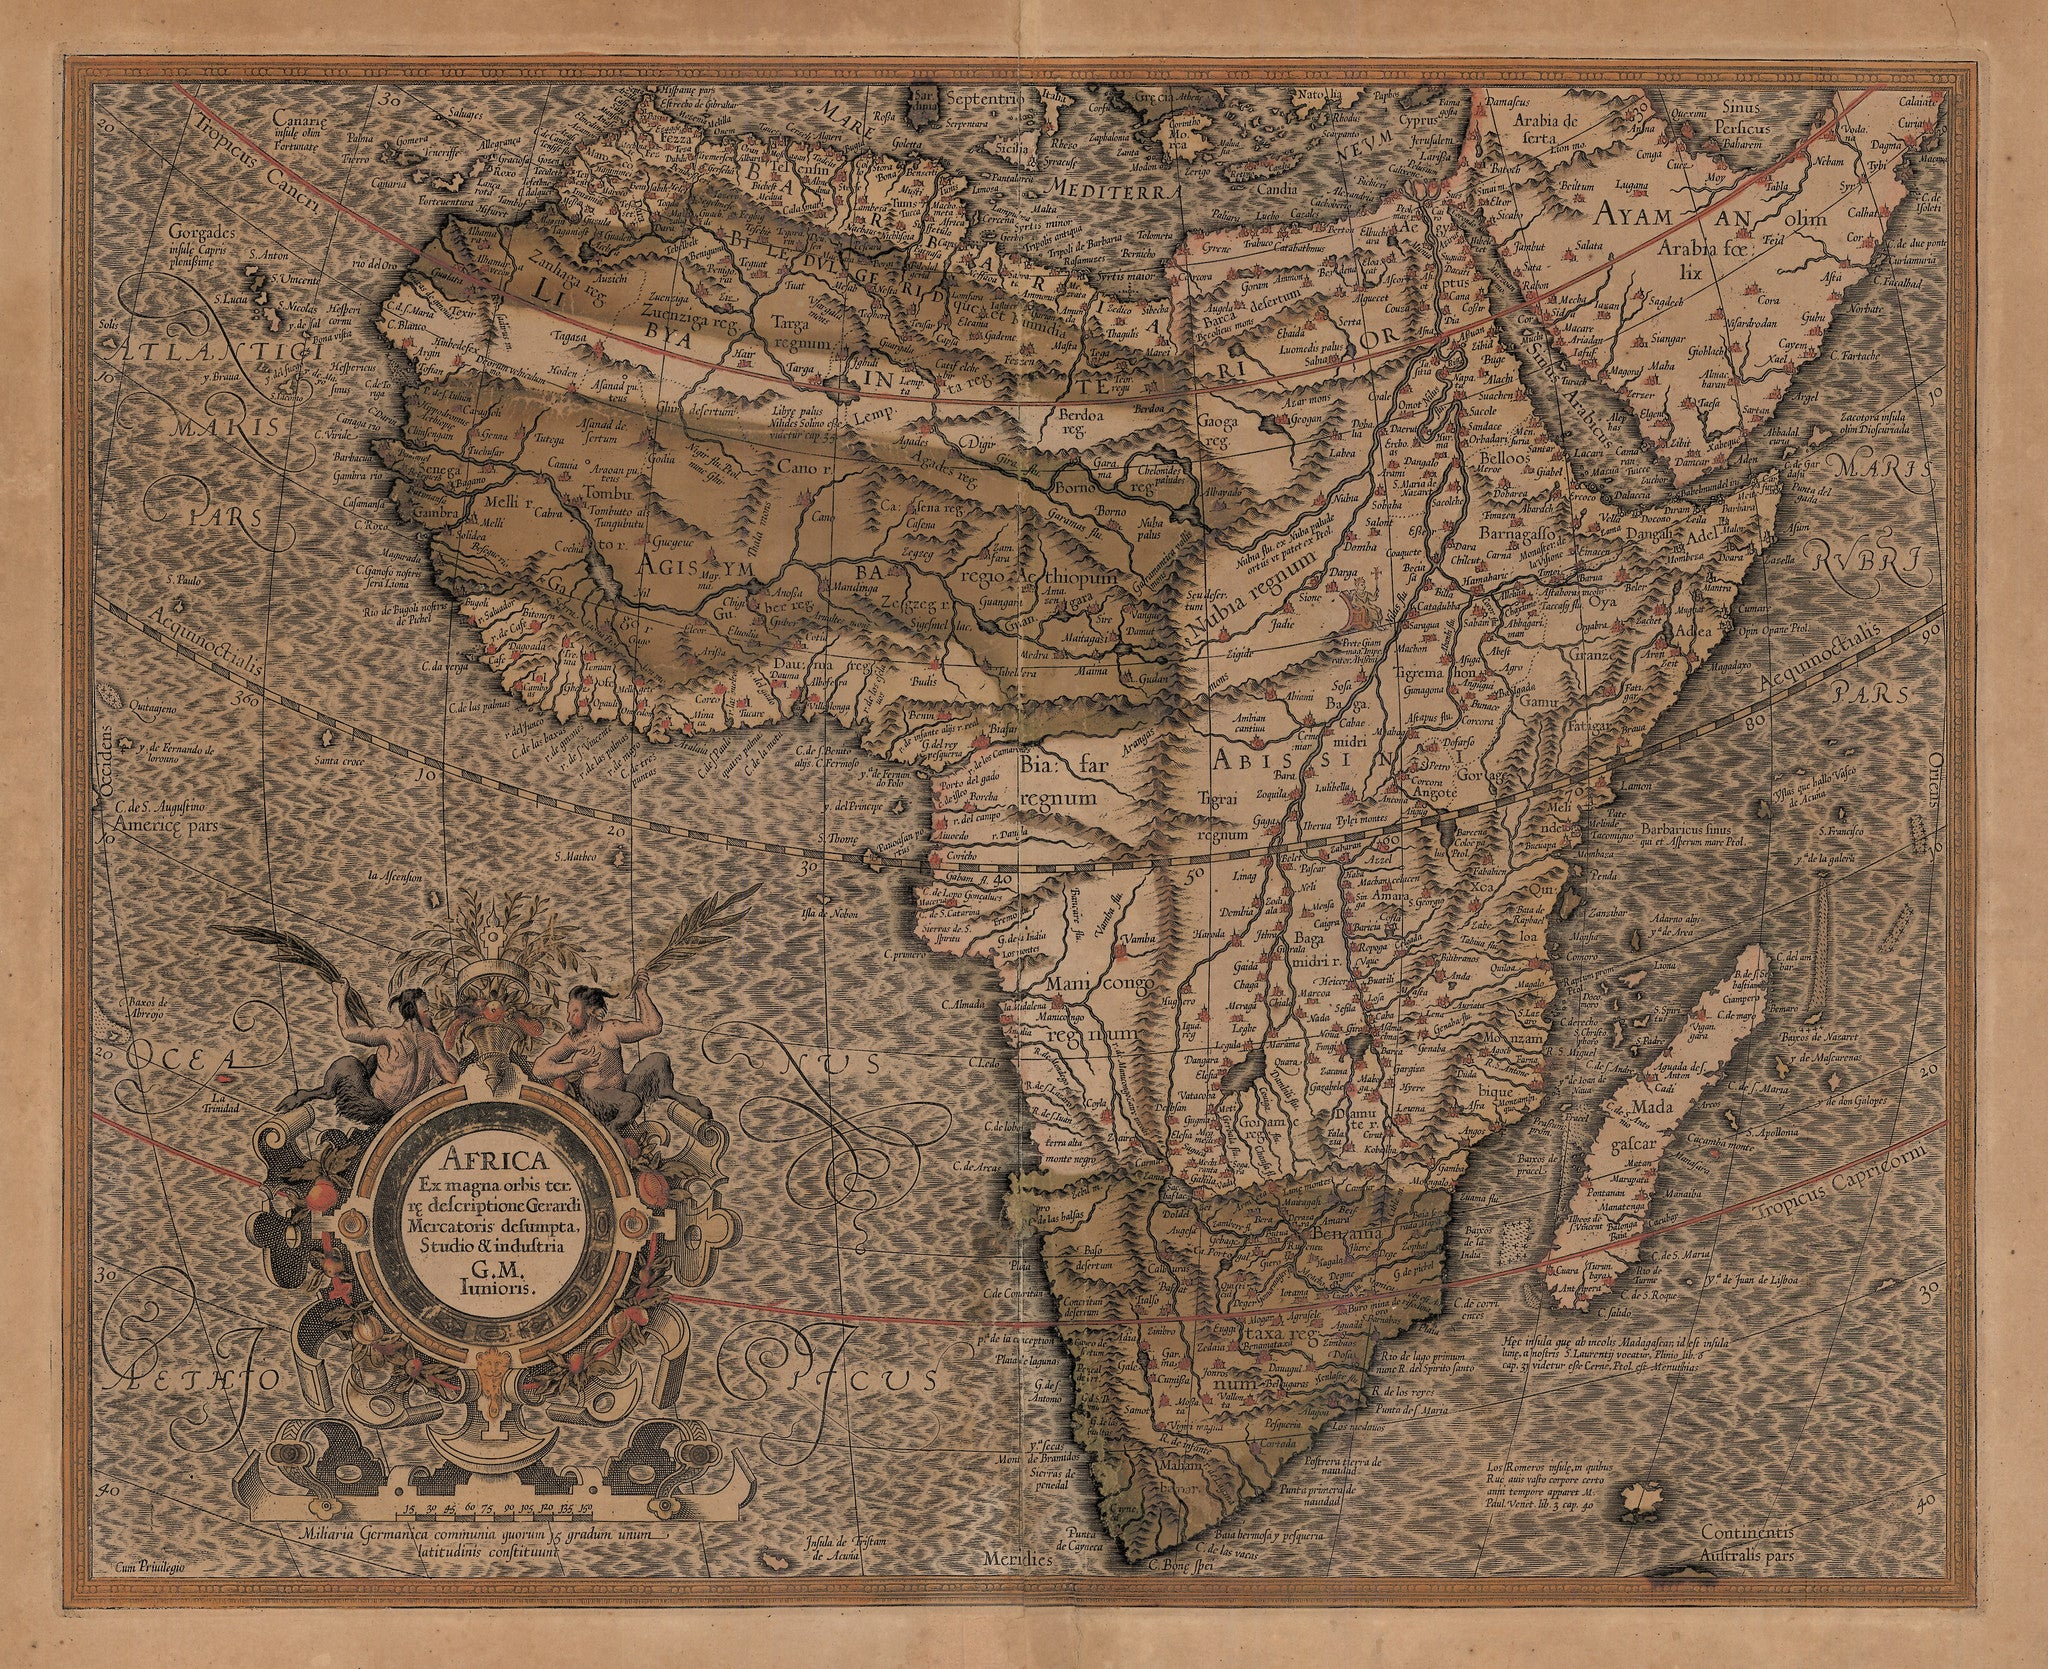 Authentic Antique Map of Africa: Africa Ex magna orbis terre descriptione Gerardi Mercatoris desumpta, Studio & industria Gerard Mercator (Junior) Date: 1607 (published) Amsterdam